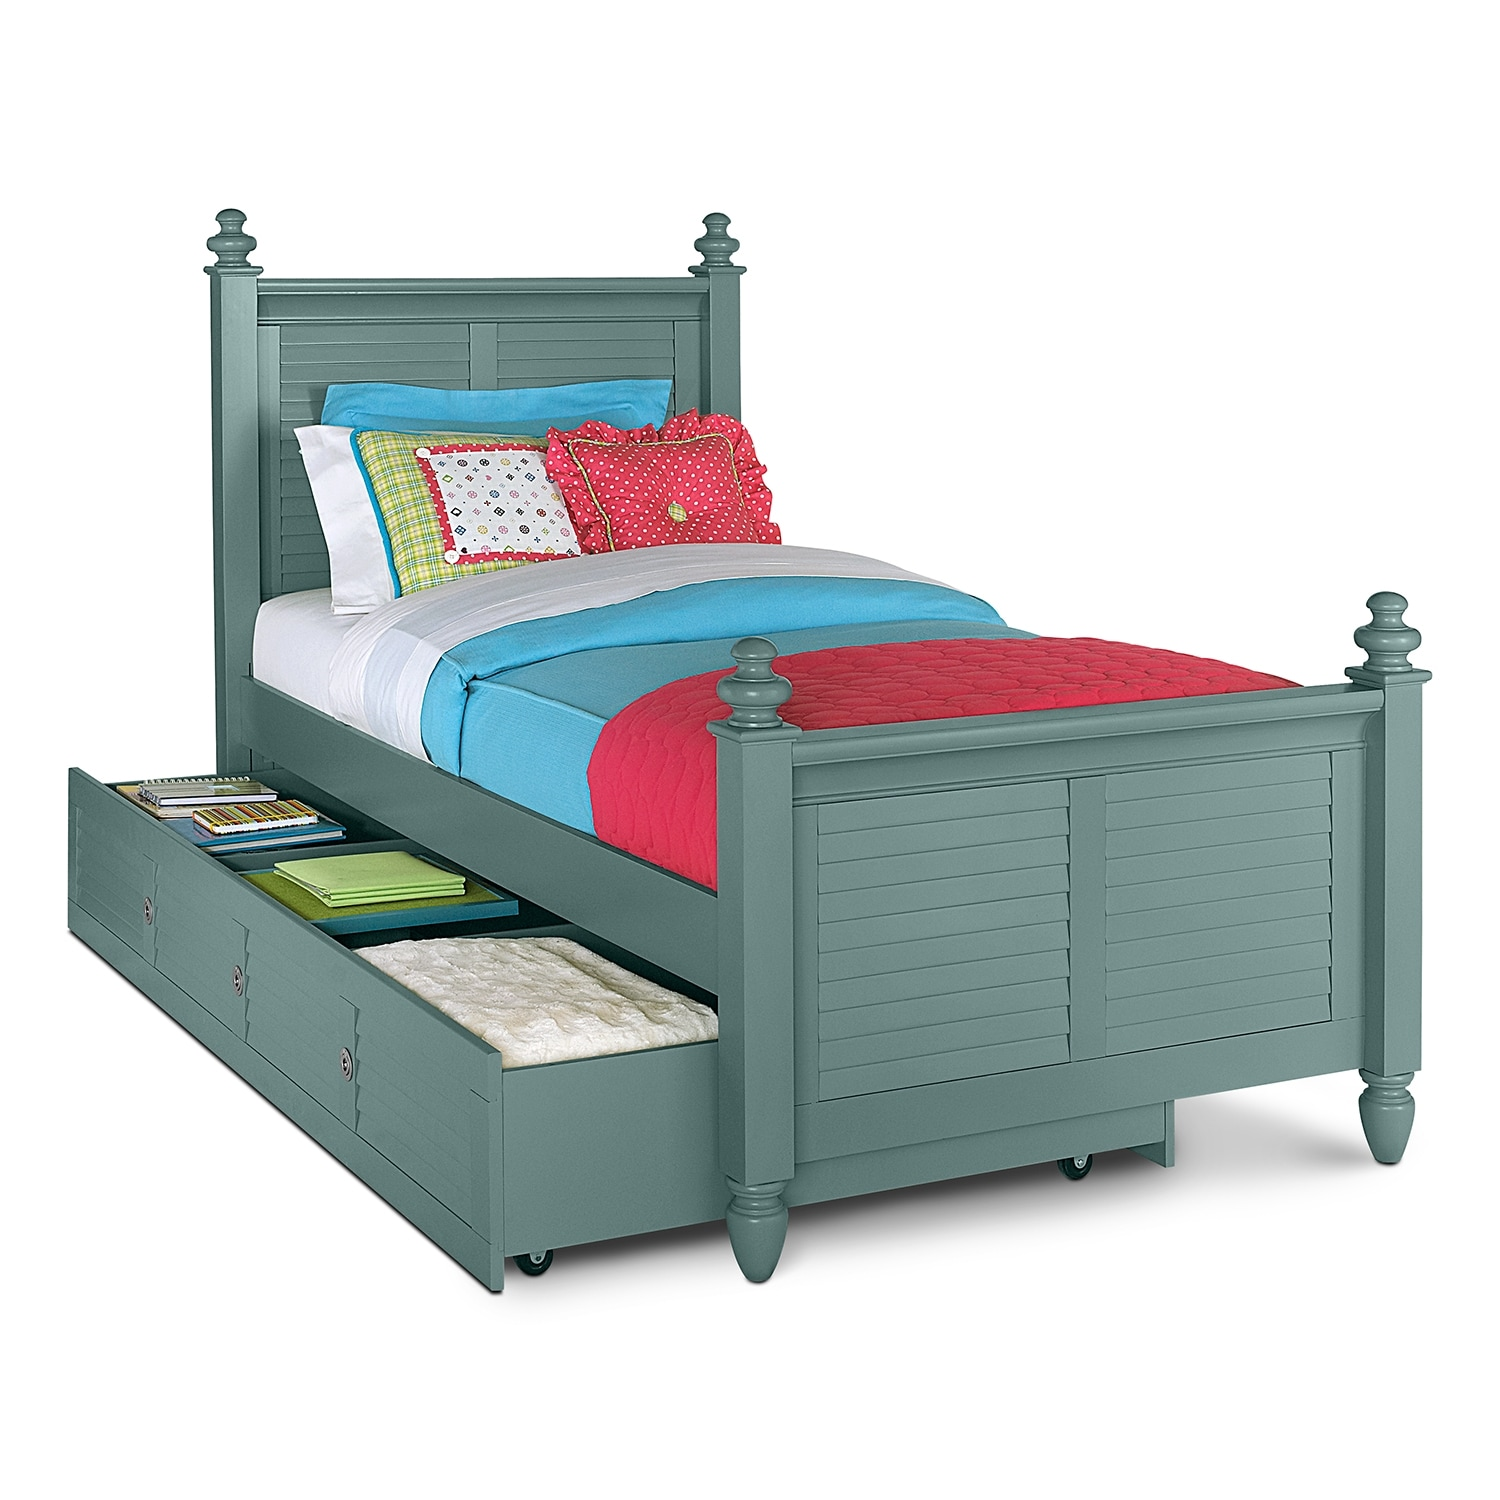 Full Beds | Value City | Value City Furniture